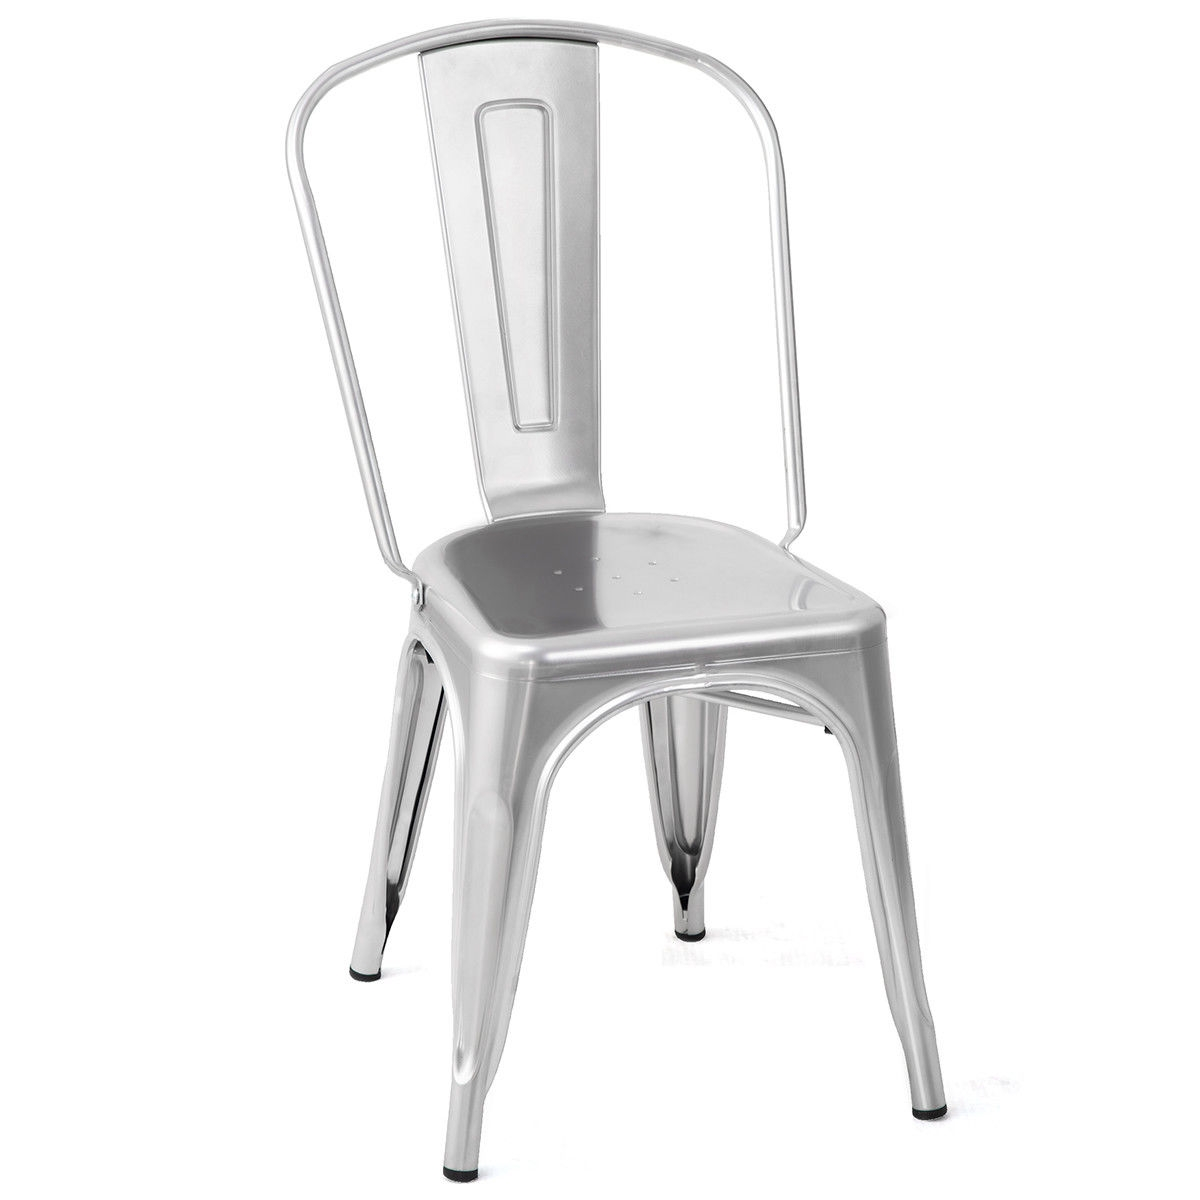 White Bistro Chairs Set Of 4 Tolix Style Dining Chair Stackable Bistro Chair